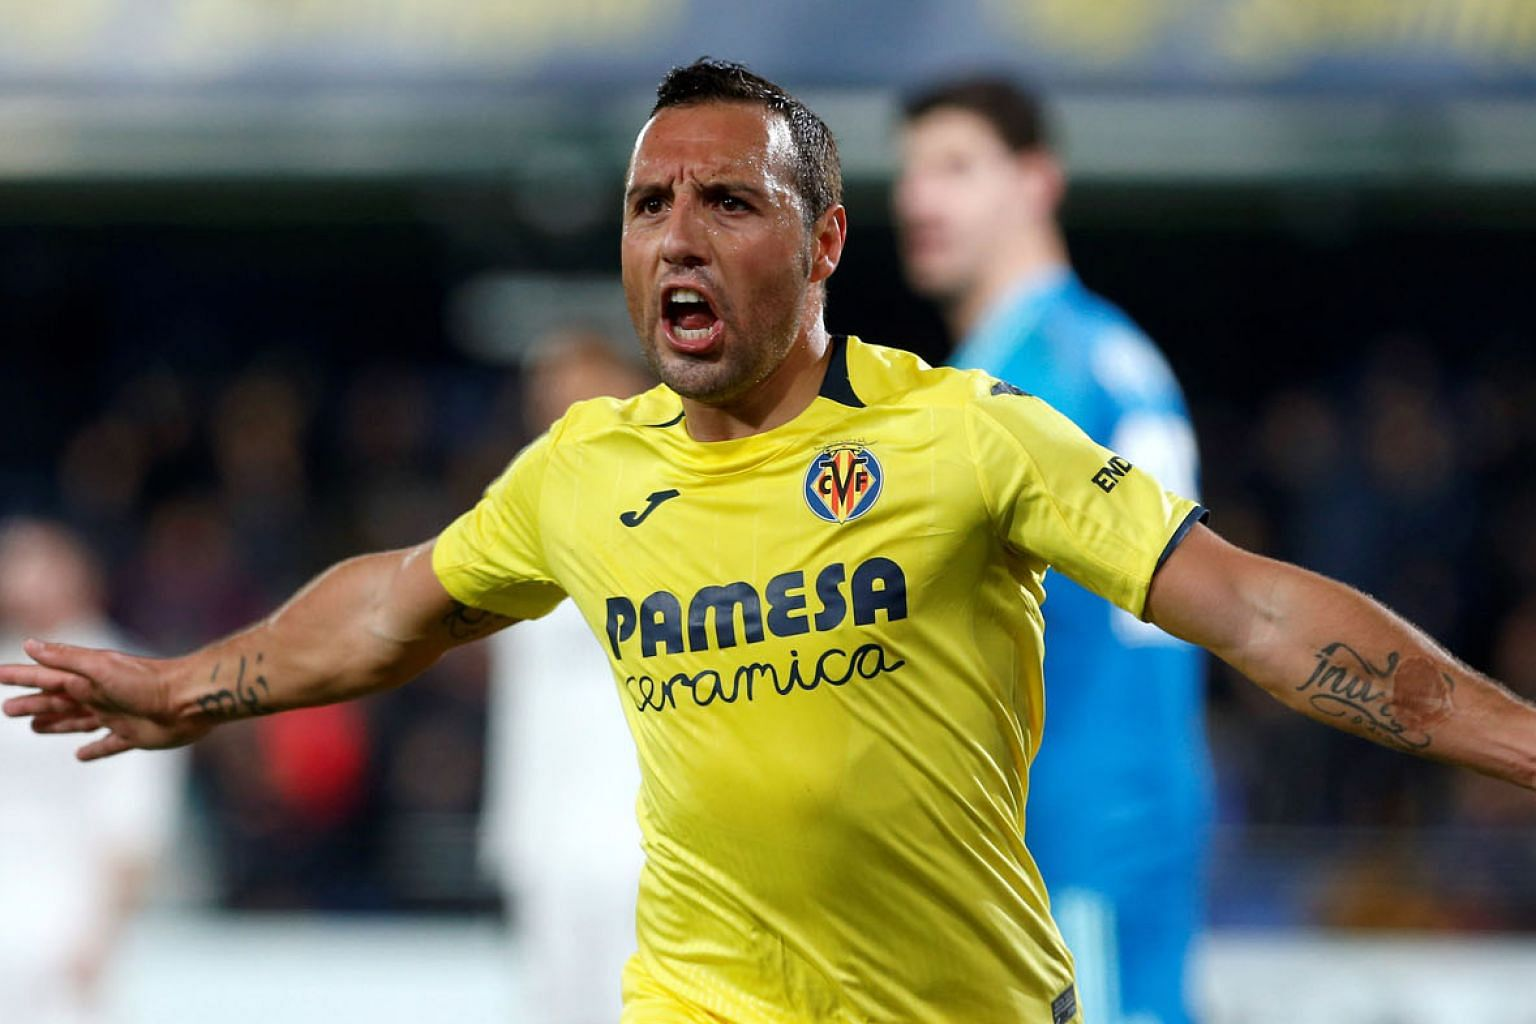 Villarreal midfielder Santi Cazorla celebrating scoring his second against Real Madrid on Thursday. The former Arsenal player's two goals salvaged a draw for struggling Villarreal.